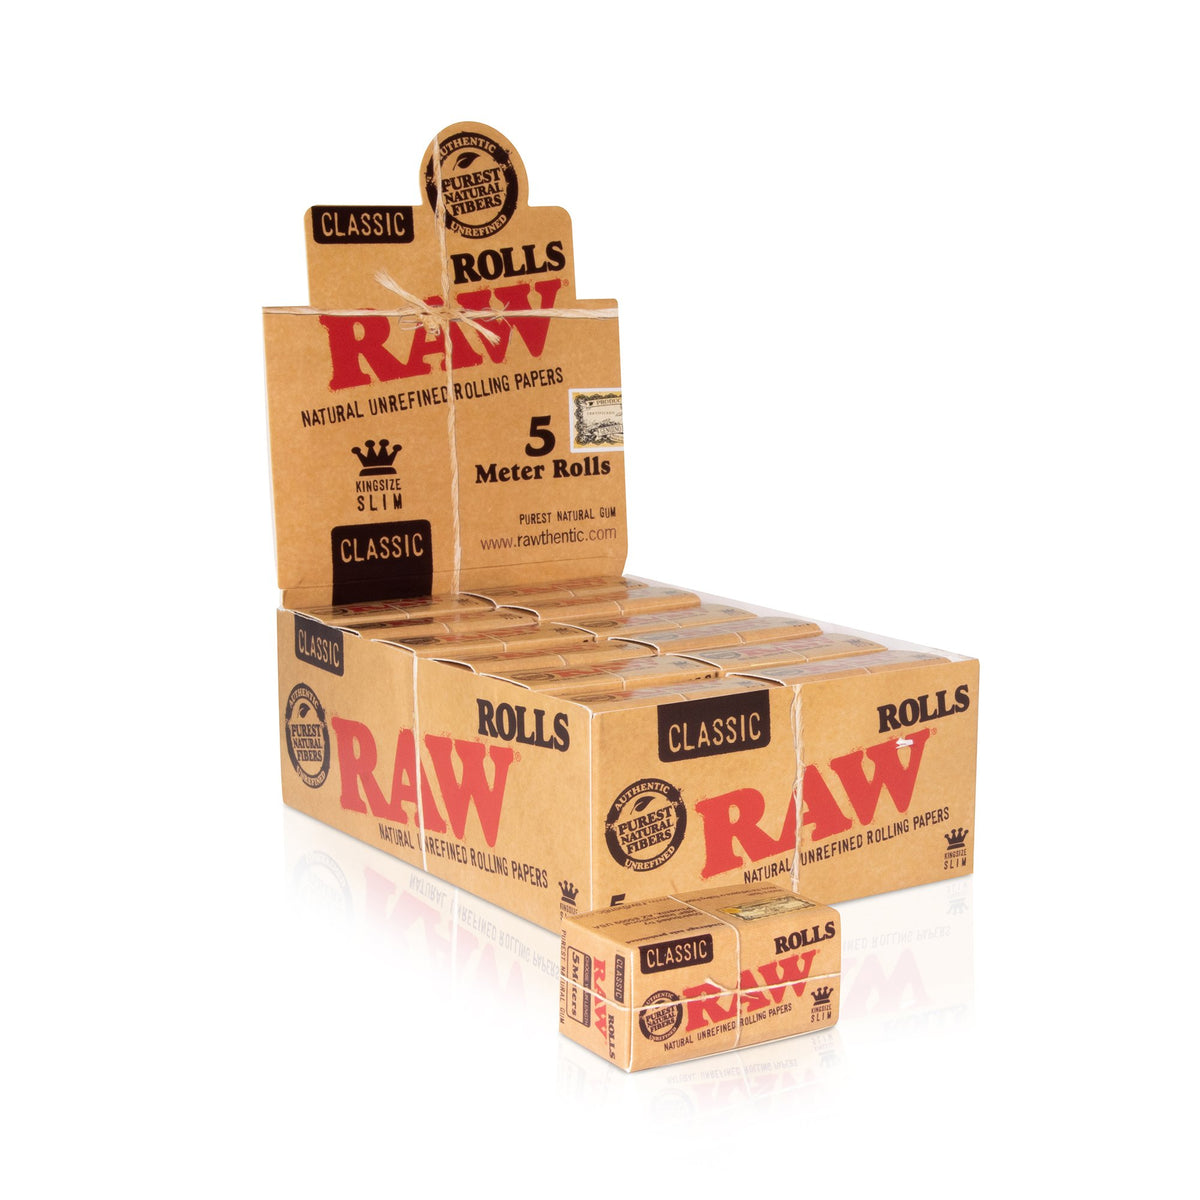 RAW Classic Paper Rolls King Size Slim - 5 Meters Rolling Papers WAR00344-MUSA01 esd-official